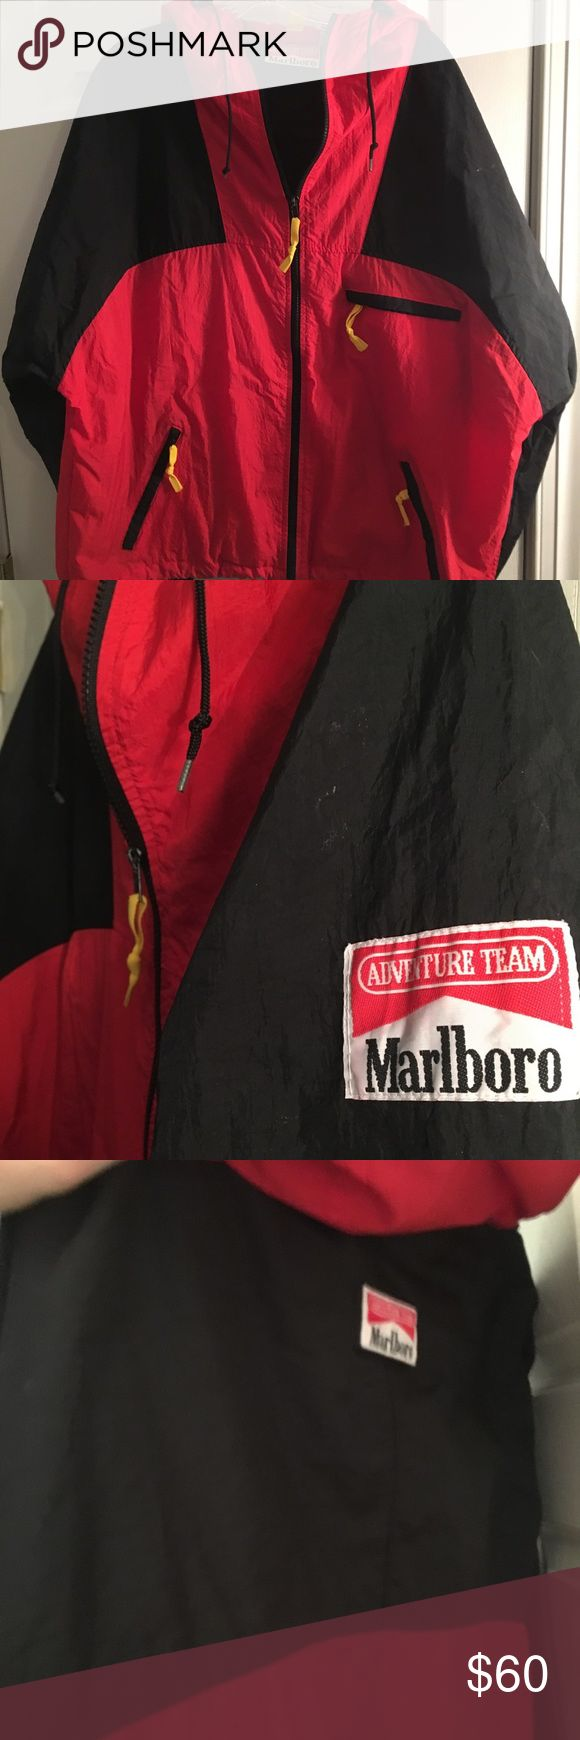 Marlboro Adventure Team windbreaker Marlboro windbreaker Marlboro Jackets & Coats Lightweight & Shirt Jackets